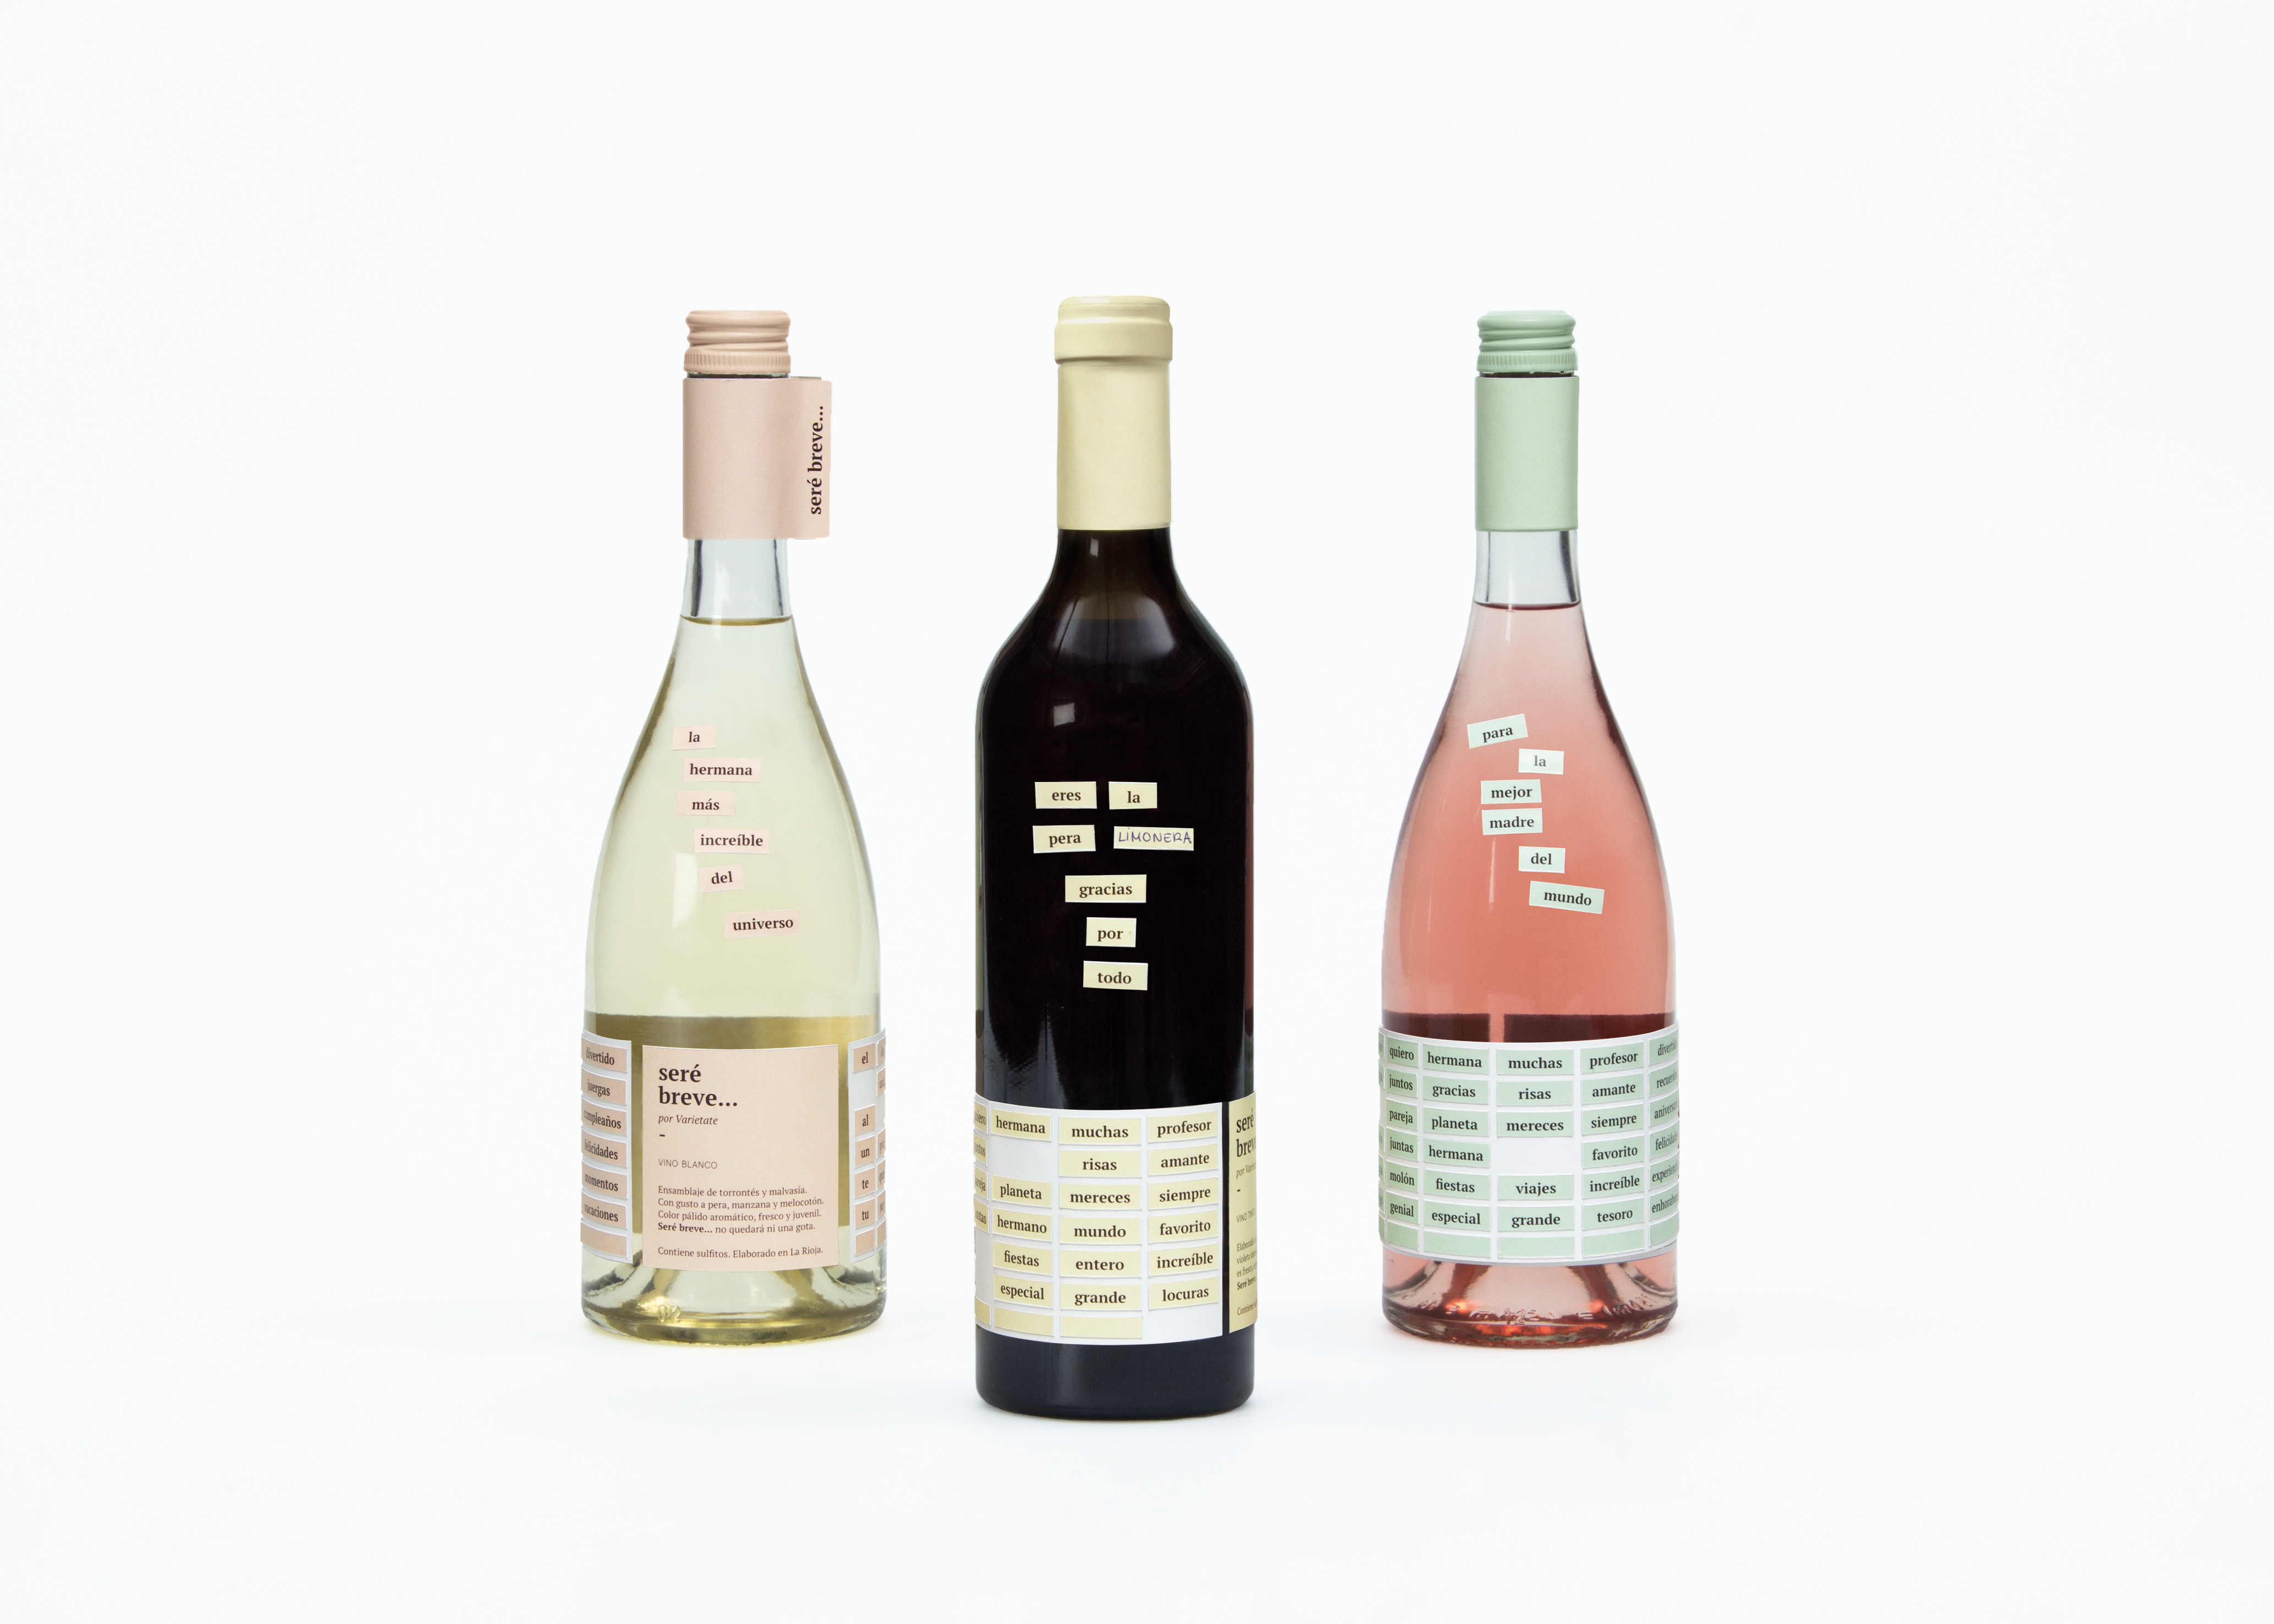 Packaging and Brand Design for Wines Produced in La Rioja